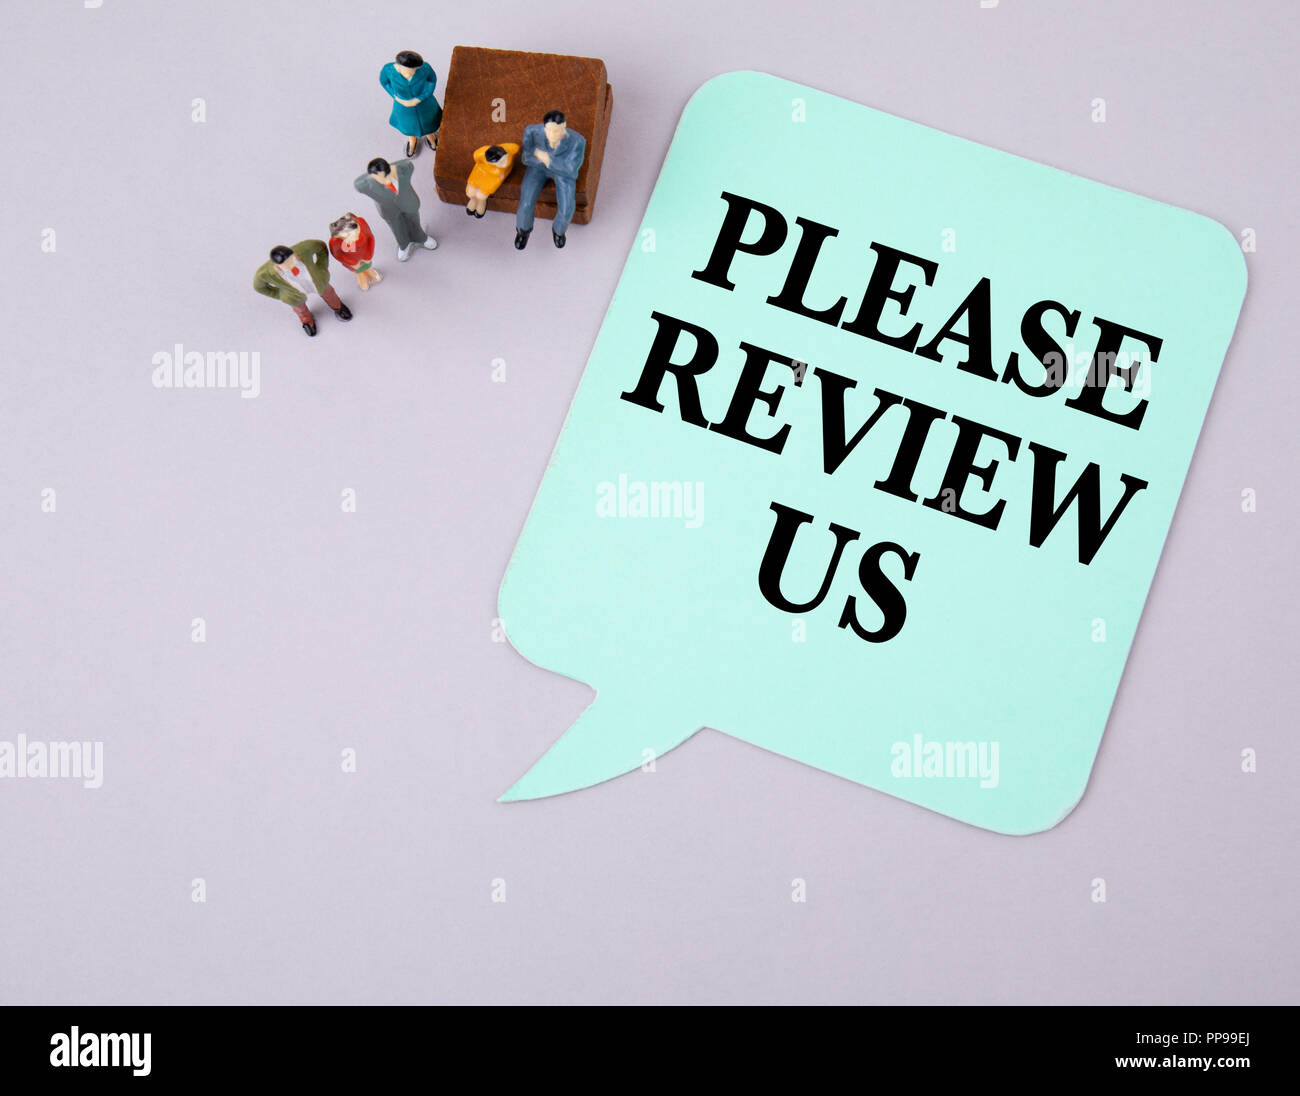 Please Review Us. Social media and business - Stock Image